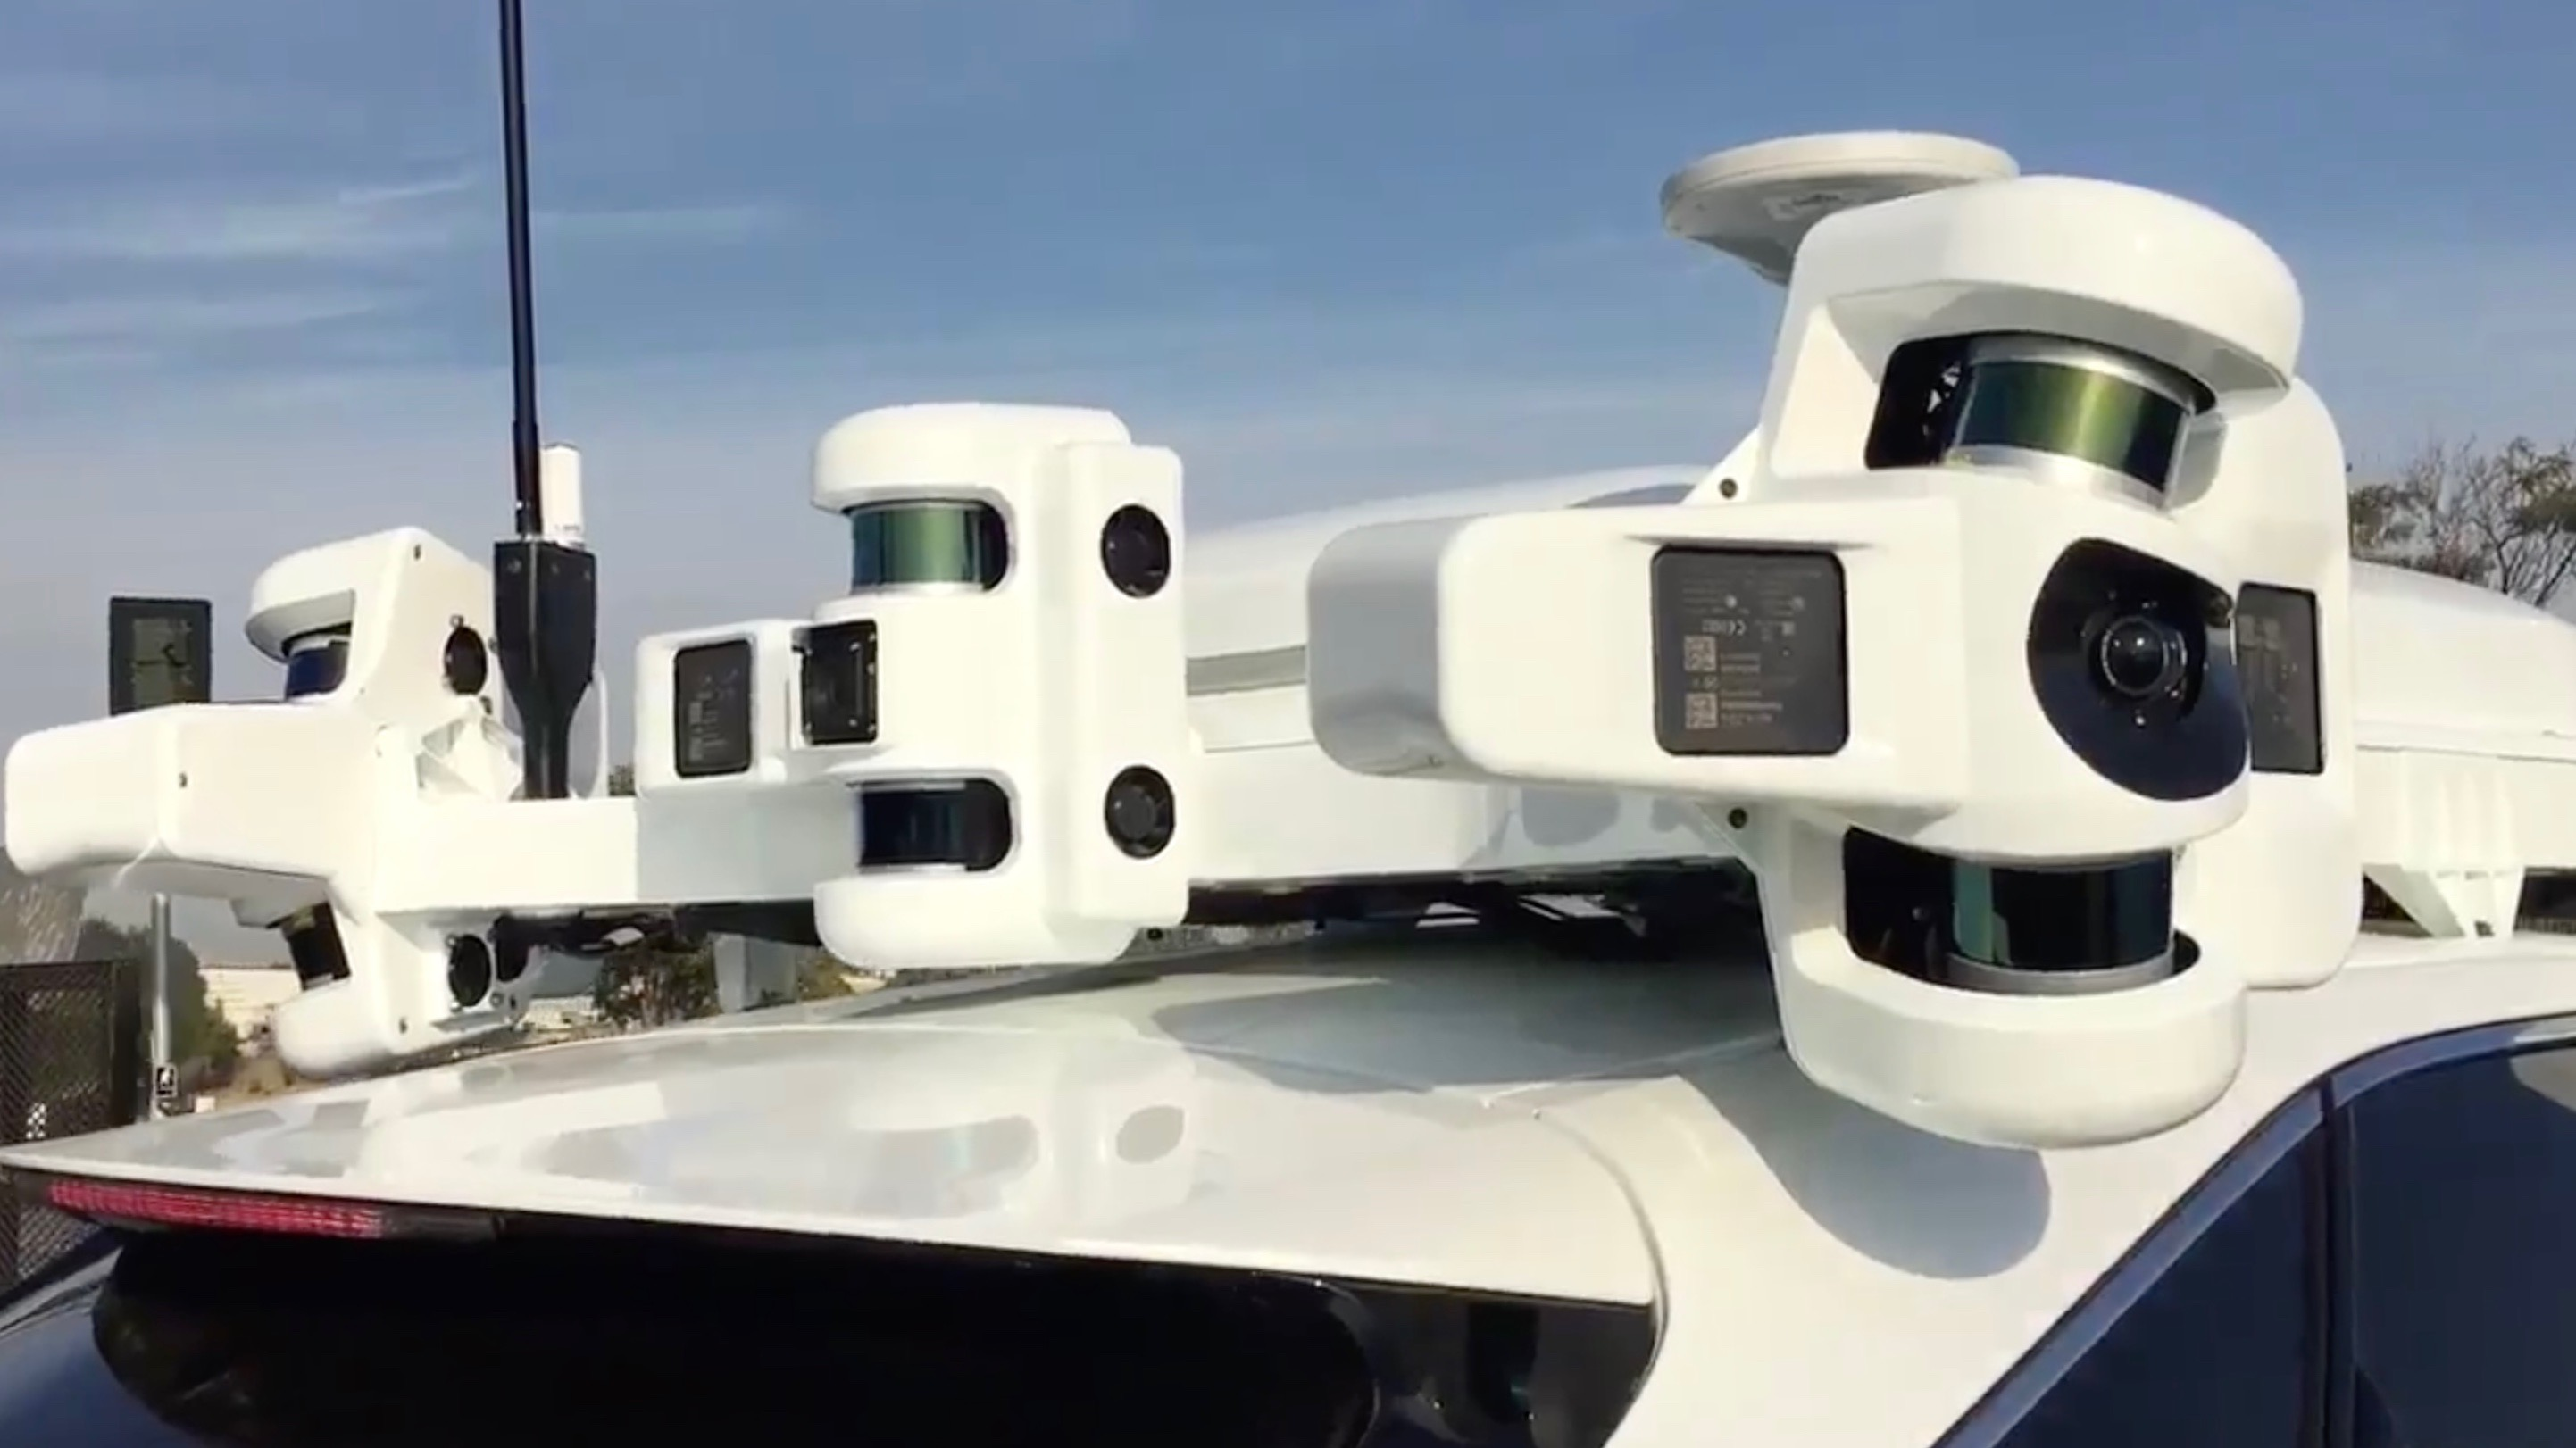 apple continues to ramp up testing of its self driving car technology in california